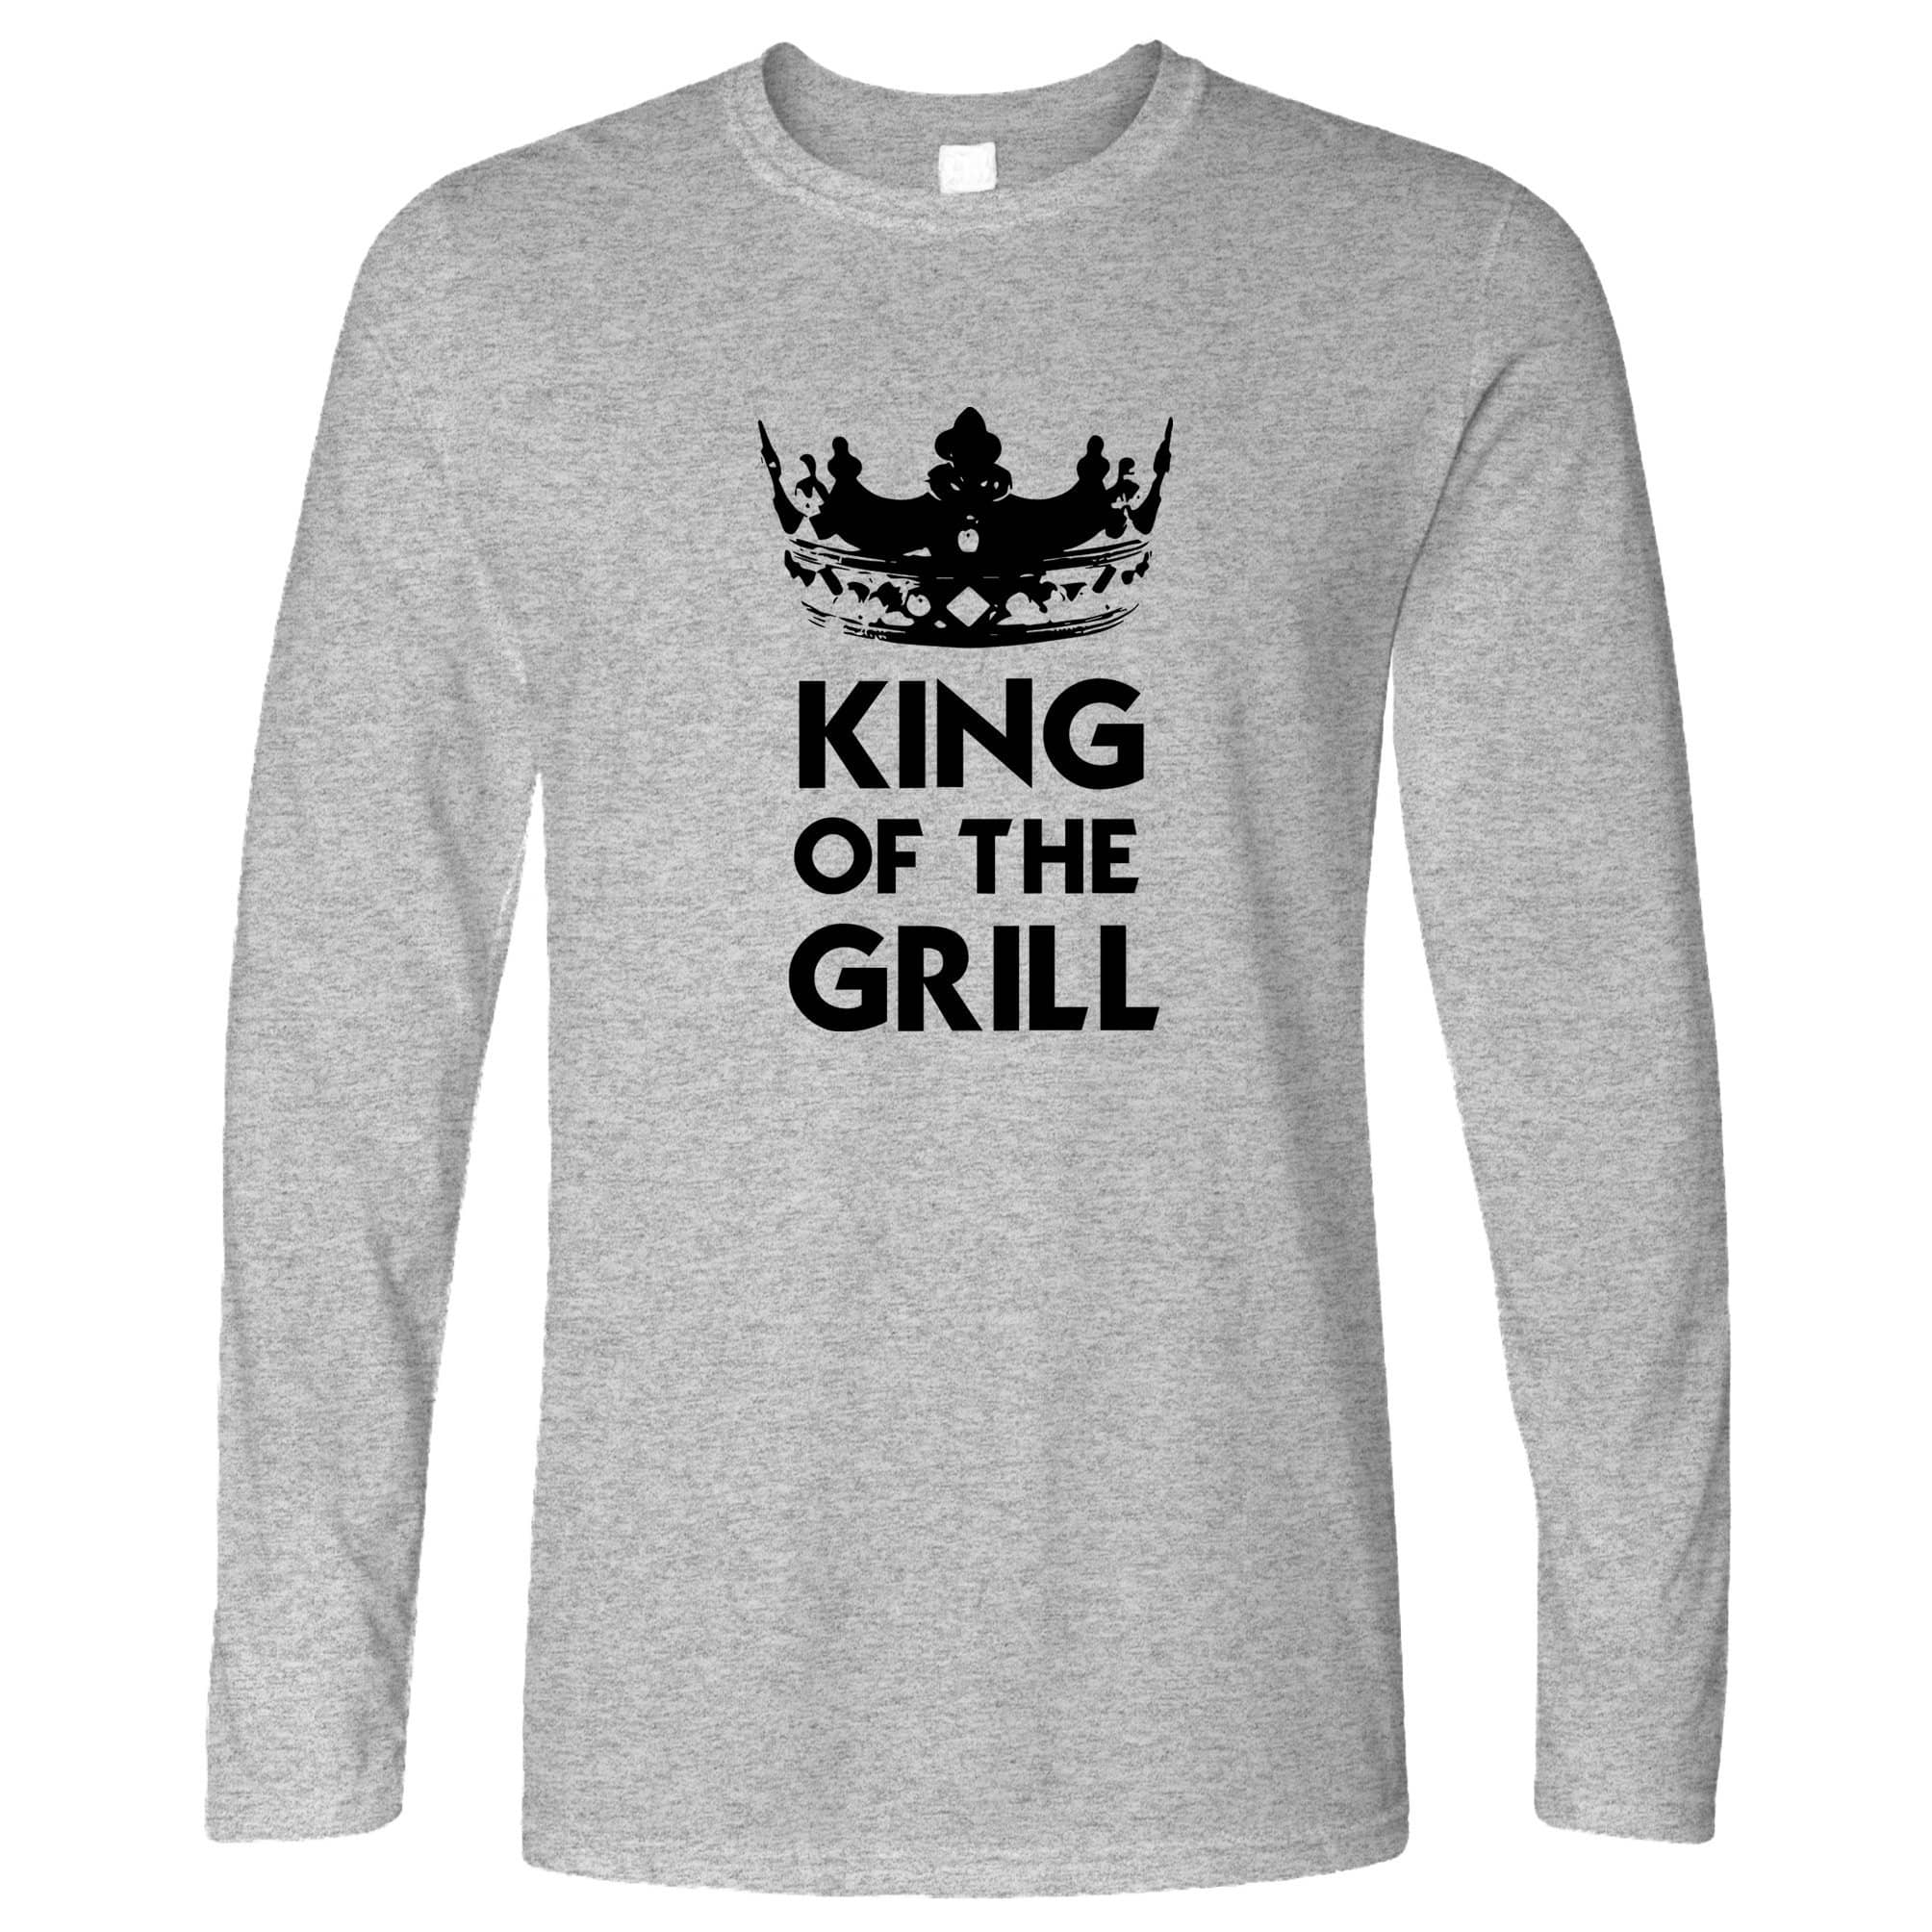 Novelty Cooking Long Sleeve King Of The Grill Slogan T-Shirt